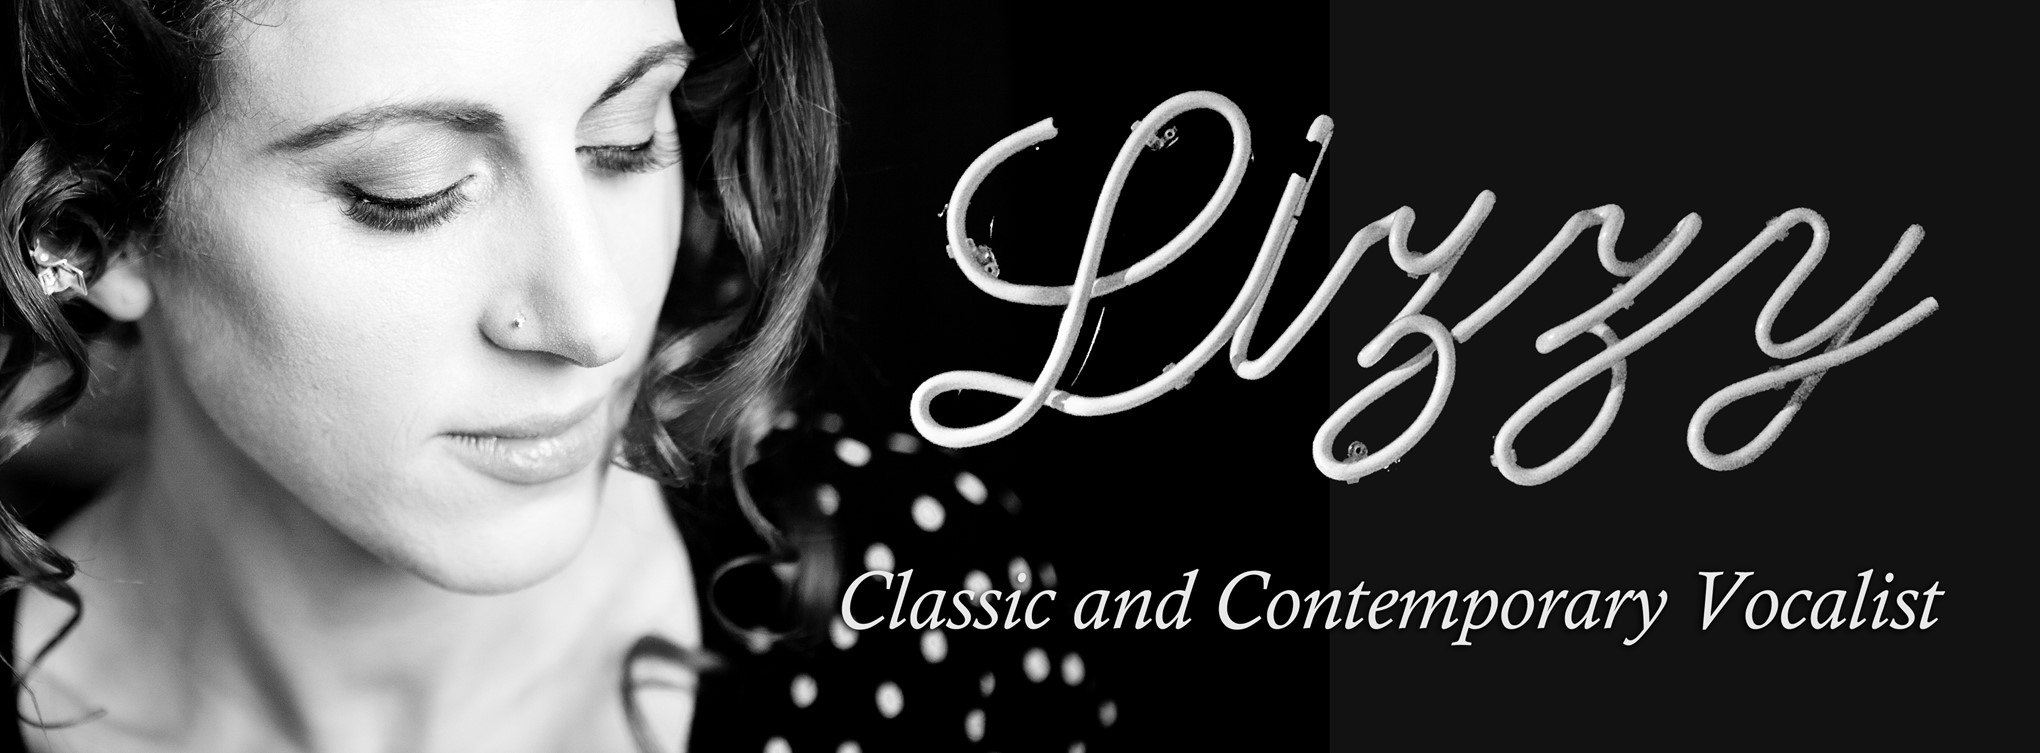 Lizzy - Classic and Contemporary